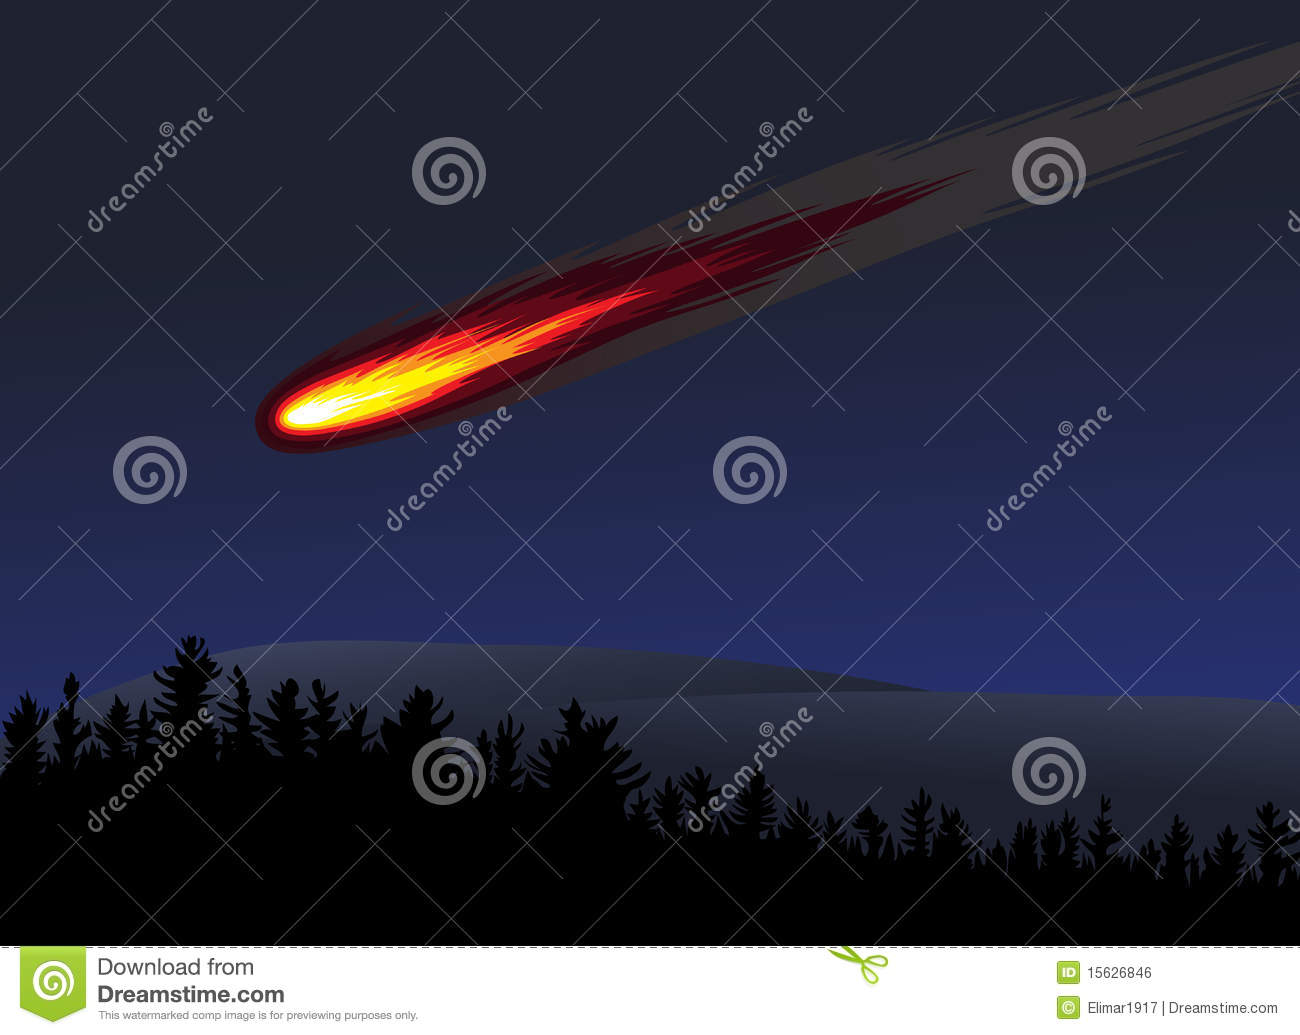 Meteor Or Fireball Royalty Free Stock Image - Image: 15626846